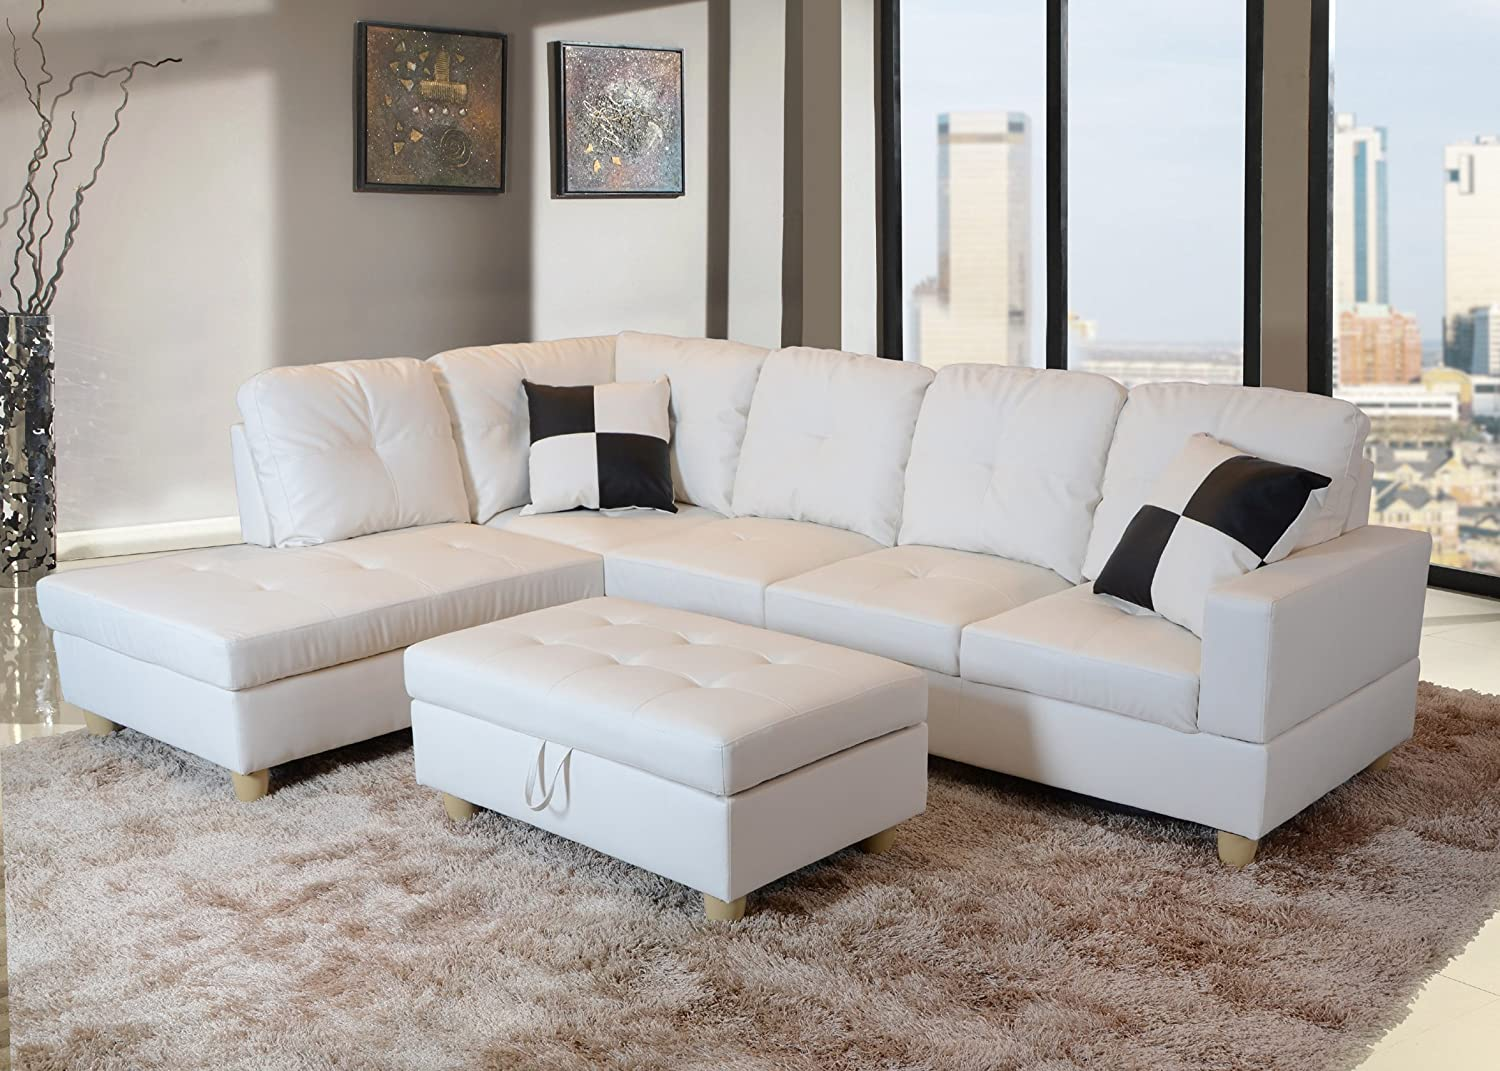 Amazon.com: LifeStyle Faux Leather Right Facing Sectional Sofa Set With  Storage Ottoman,2 Square Pillows, White, 3 Piece: Kitchen U0026 Dining Part 74